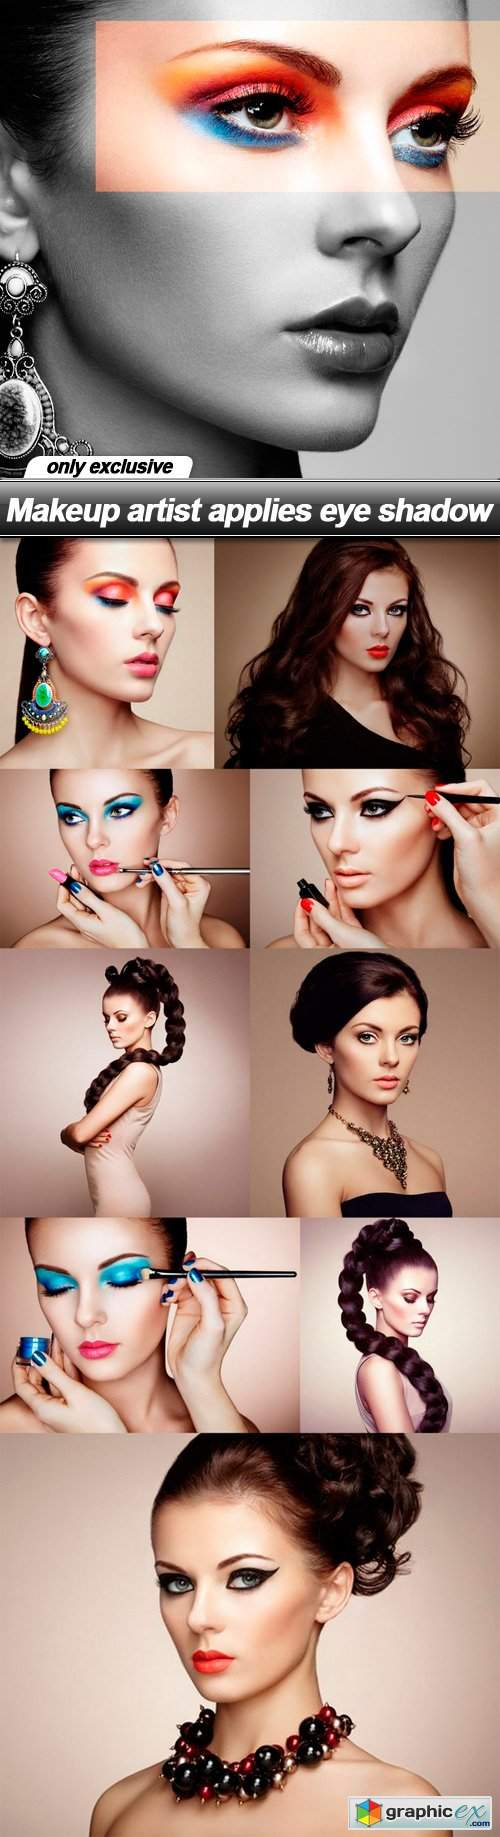 Makeup artist applies eye shadow - 10 UHQ JPEG